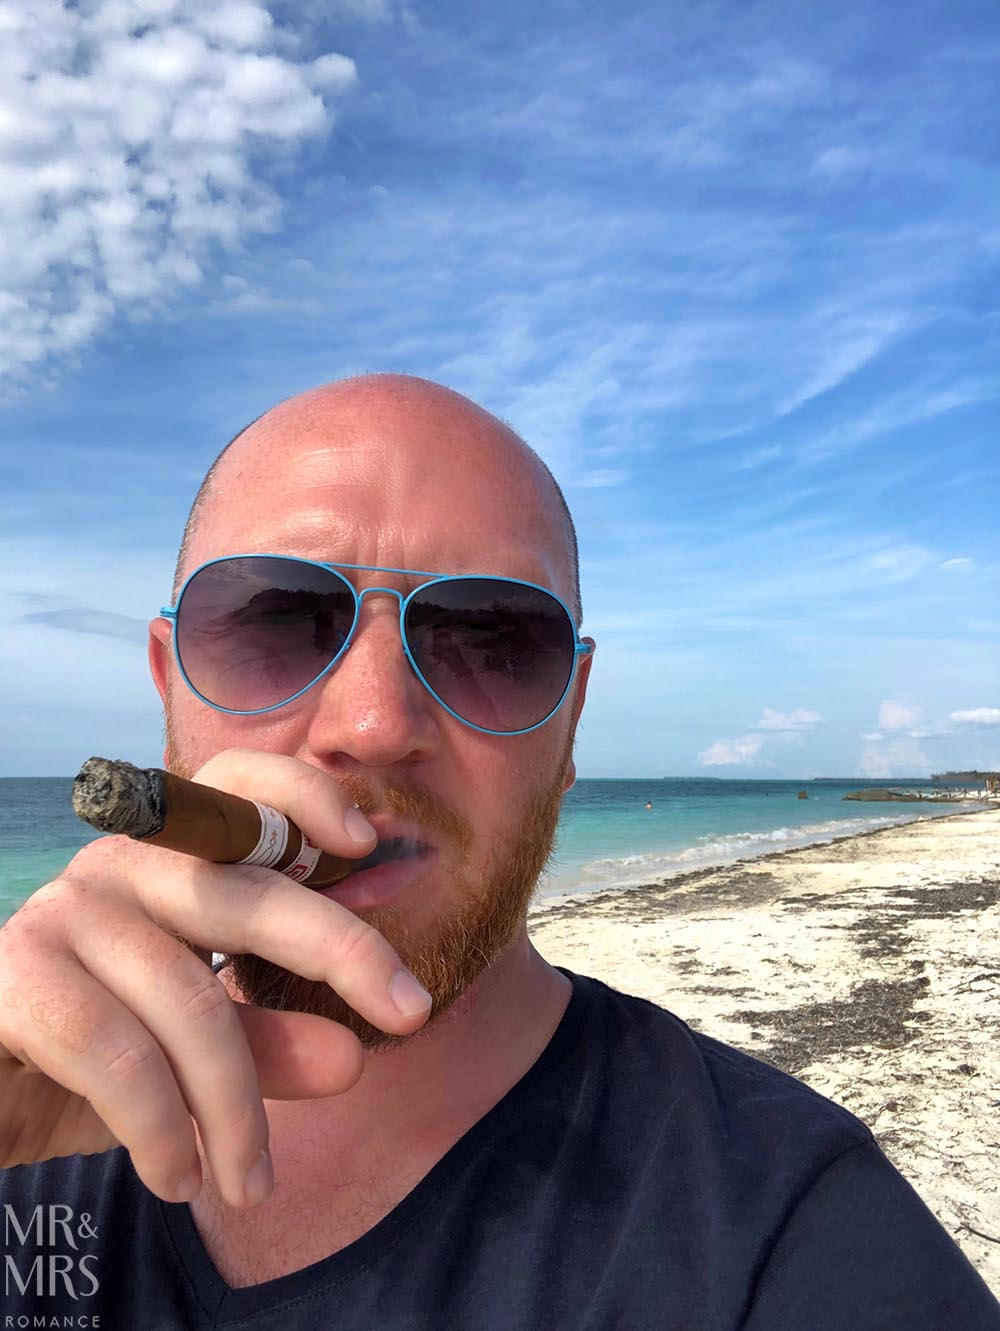 Cayo Levisa, Cuba - cigar on beach